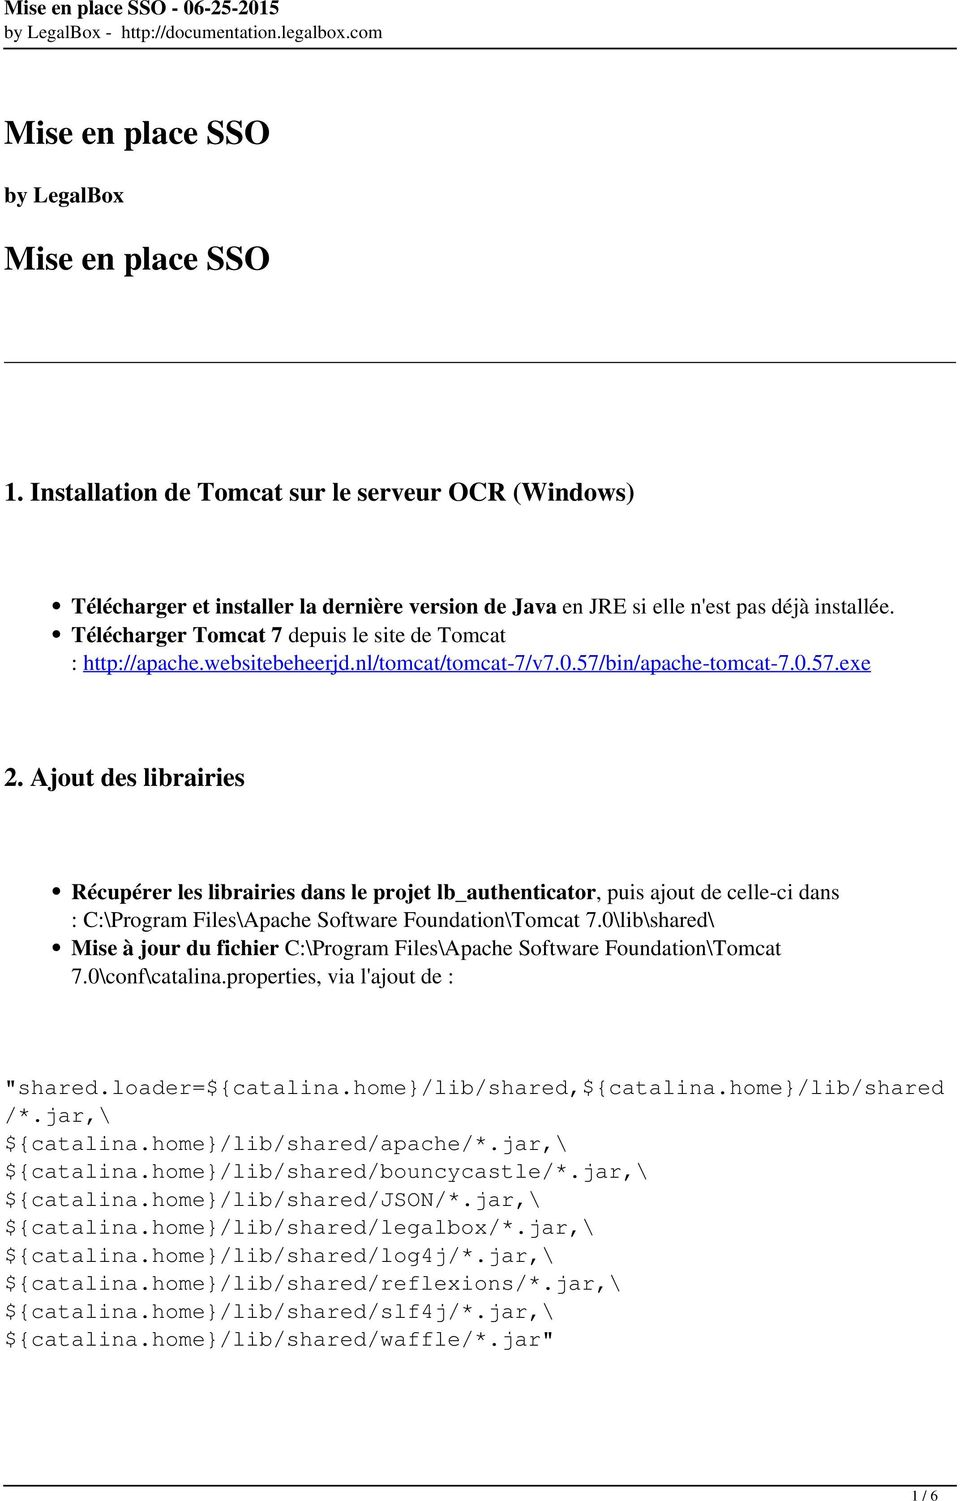 Ajout des librairies Récupérer les librairies dans le projet lb_authenticator, puis ajout de celle-ci dans : C:\Program Files\Apache Software Foundation\Tomcat 7.